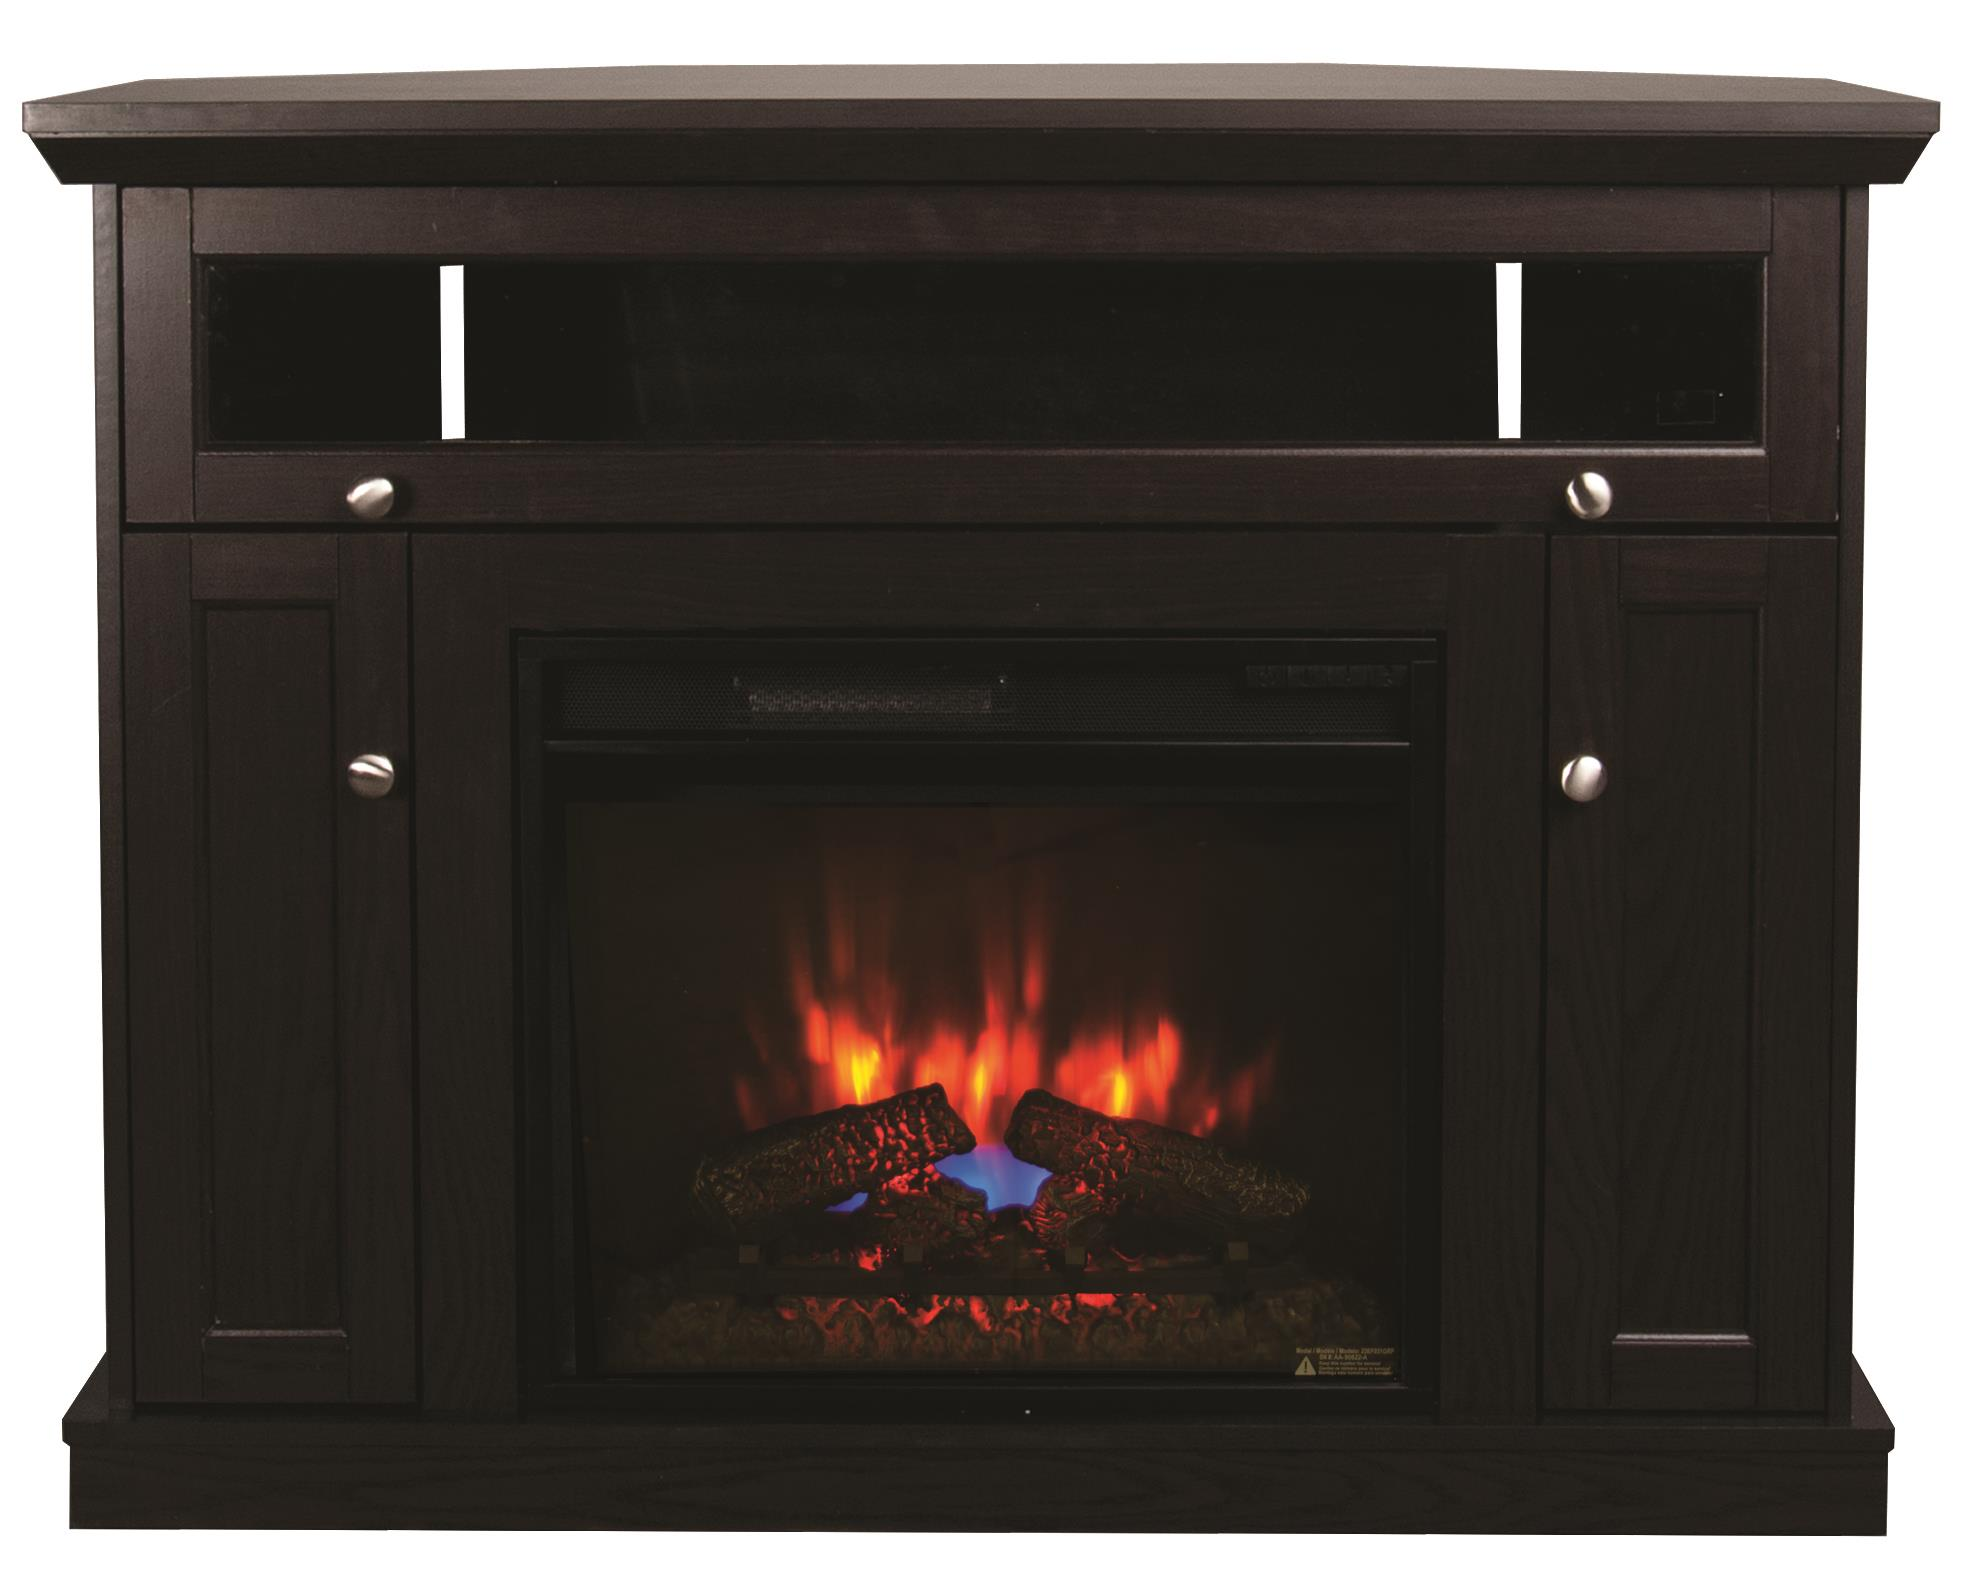 Morris Home Furnishings Windsor Dacula 2 Piece Fireplace with Insert - Item Number: 23DE9047-PE91/23EF031GRP